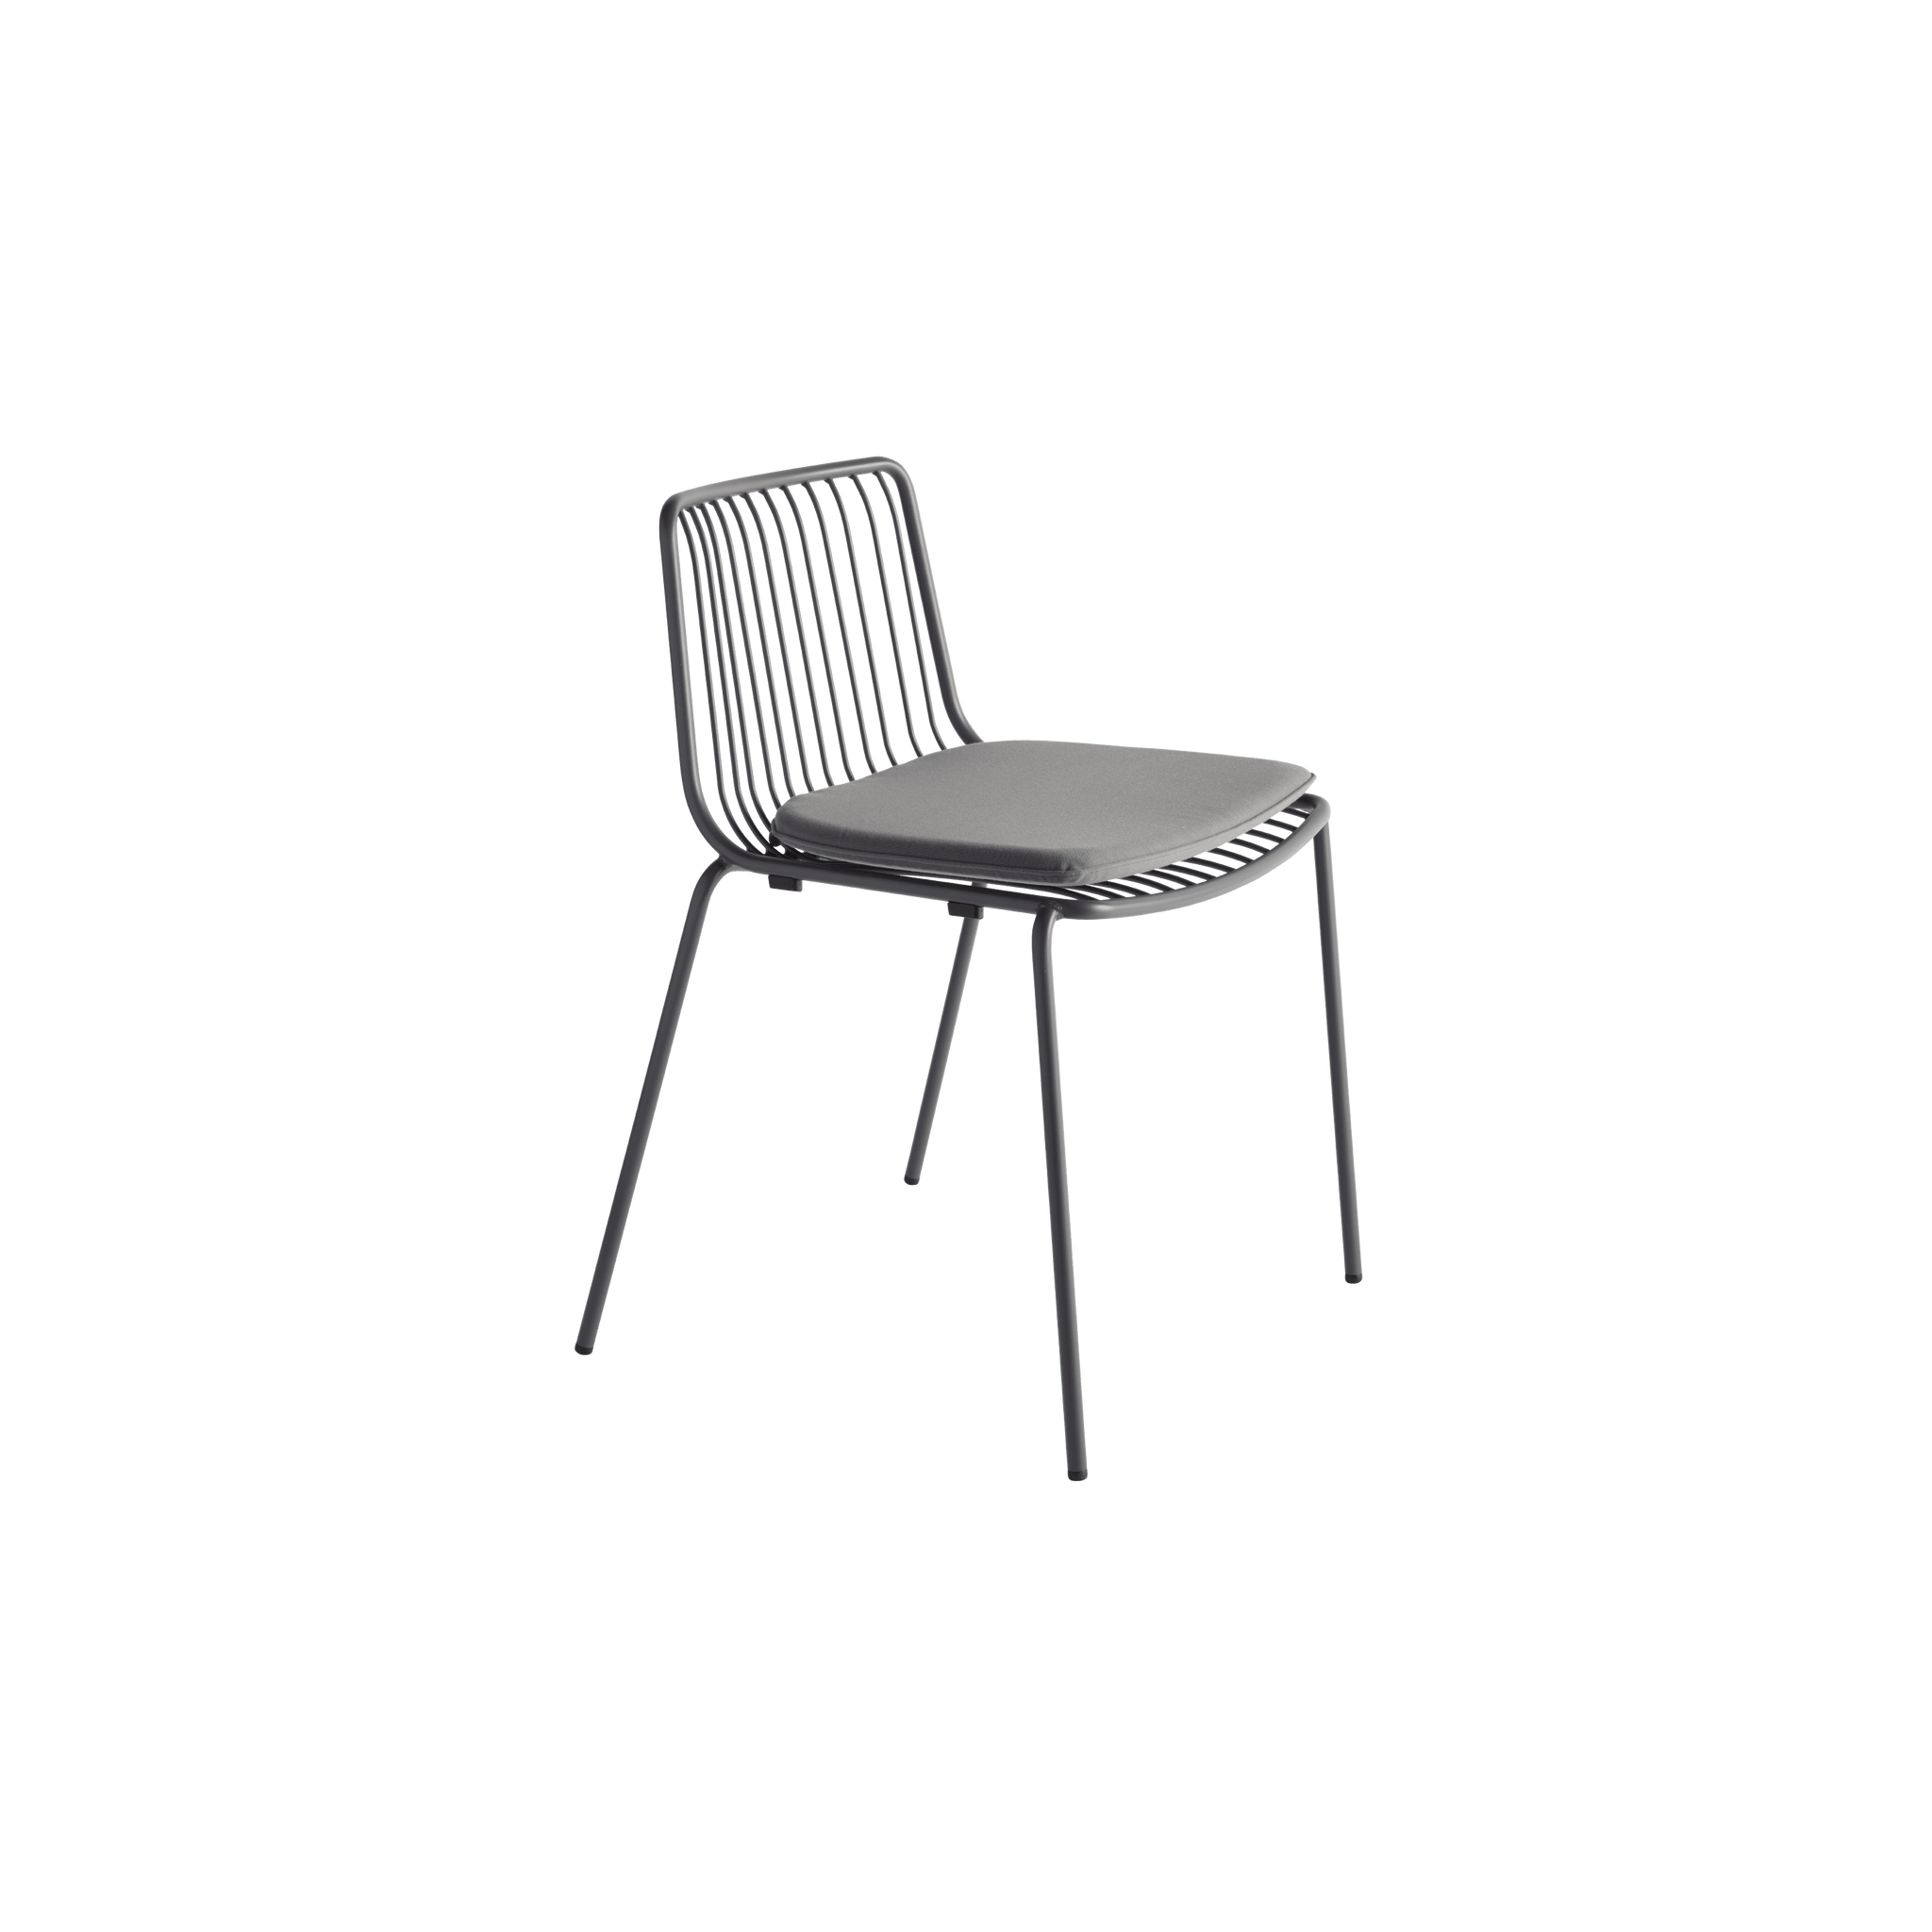 Nolita Side Chair 3650 from Pedrali